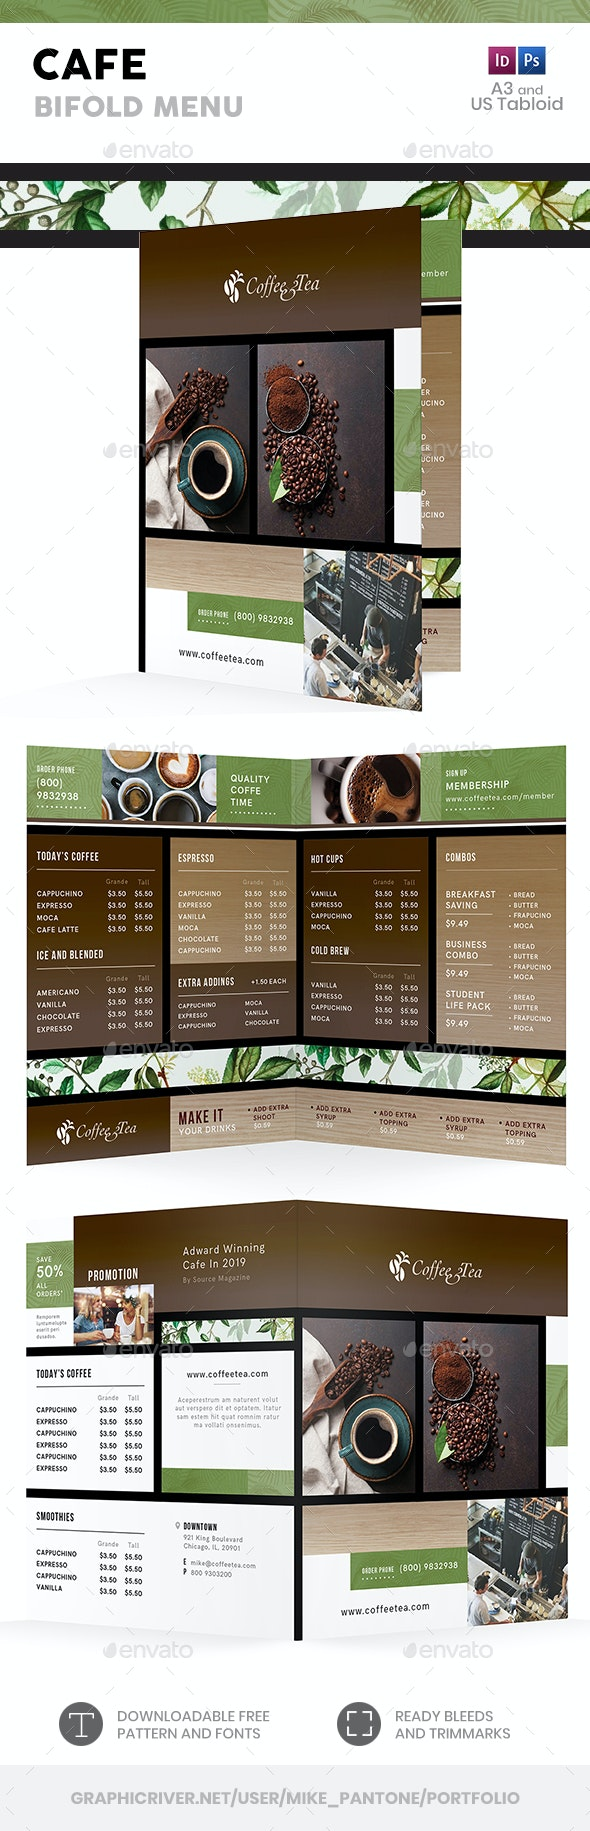 Cafe Bifold / Halffold Menu 3 - Food Menus Print Templates